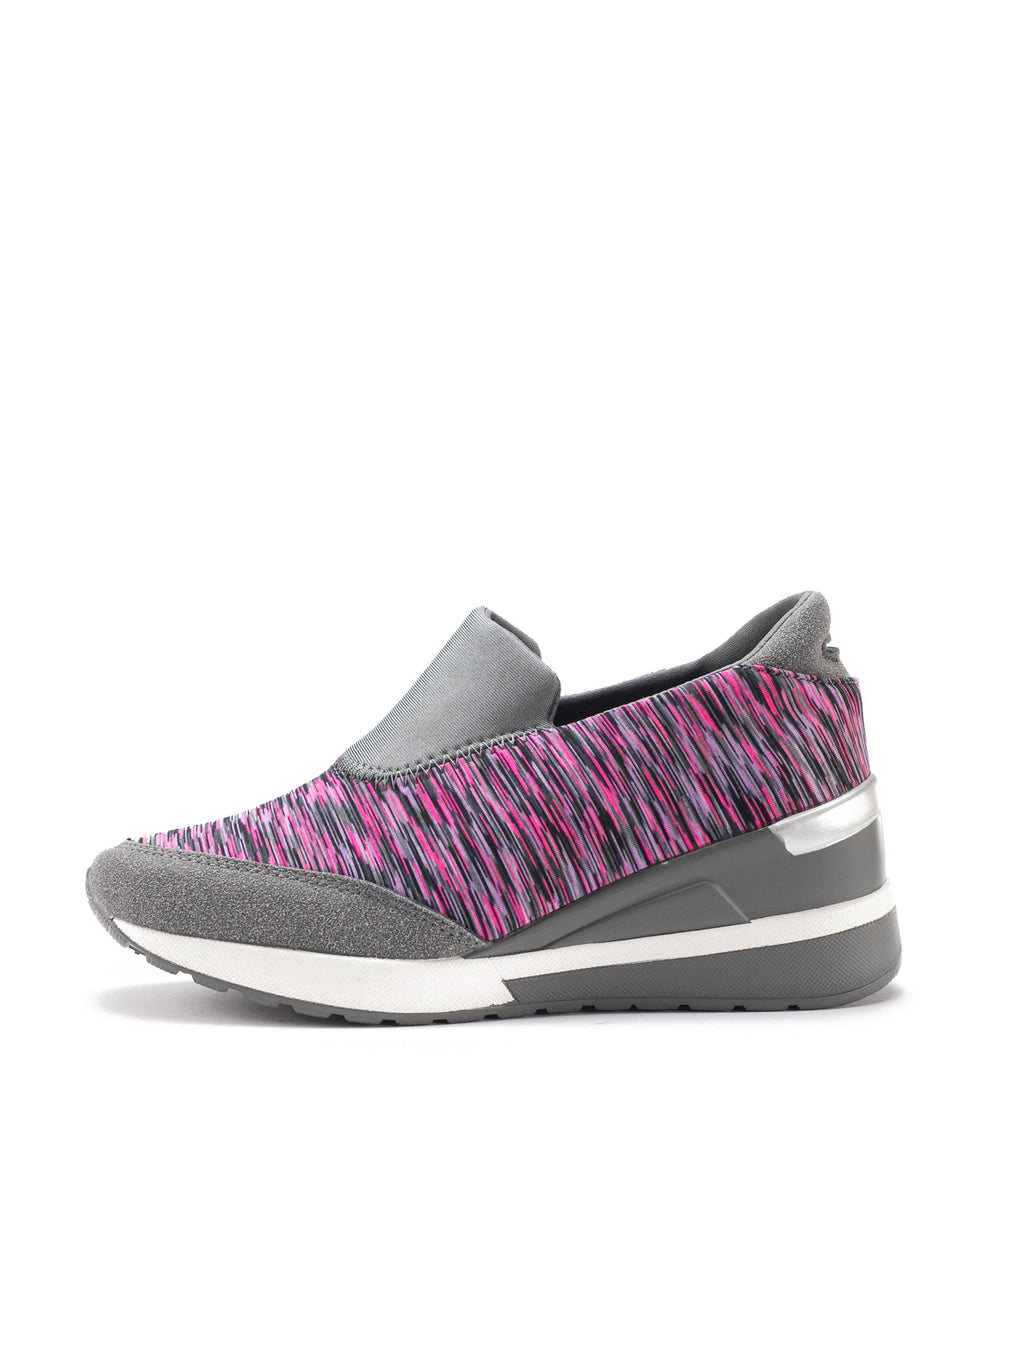 Larrie Pink Lightweight Casual Sporty Sneakers